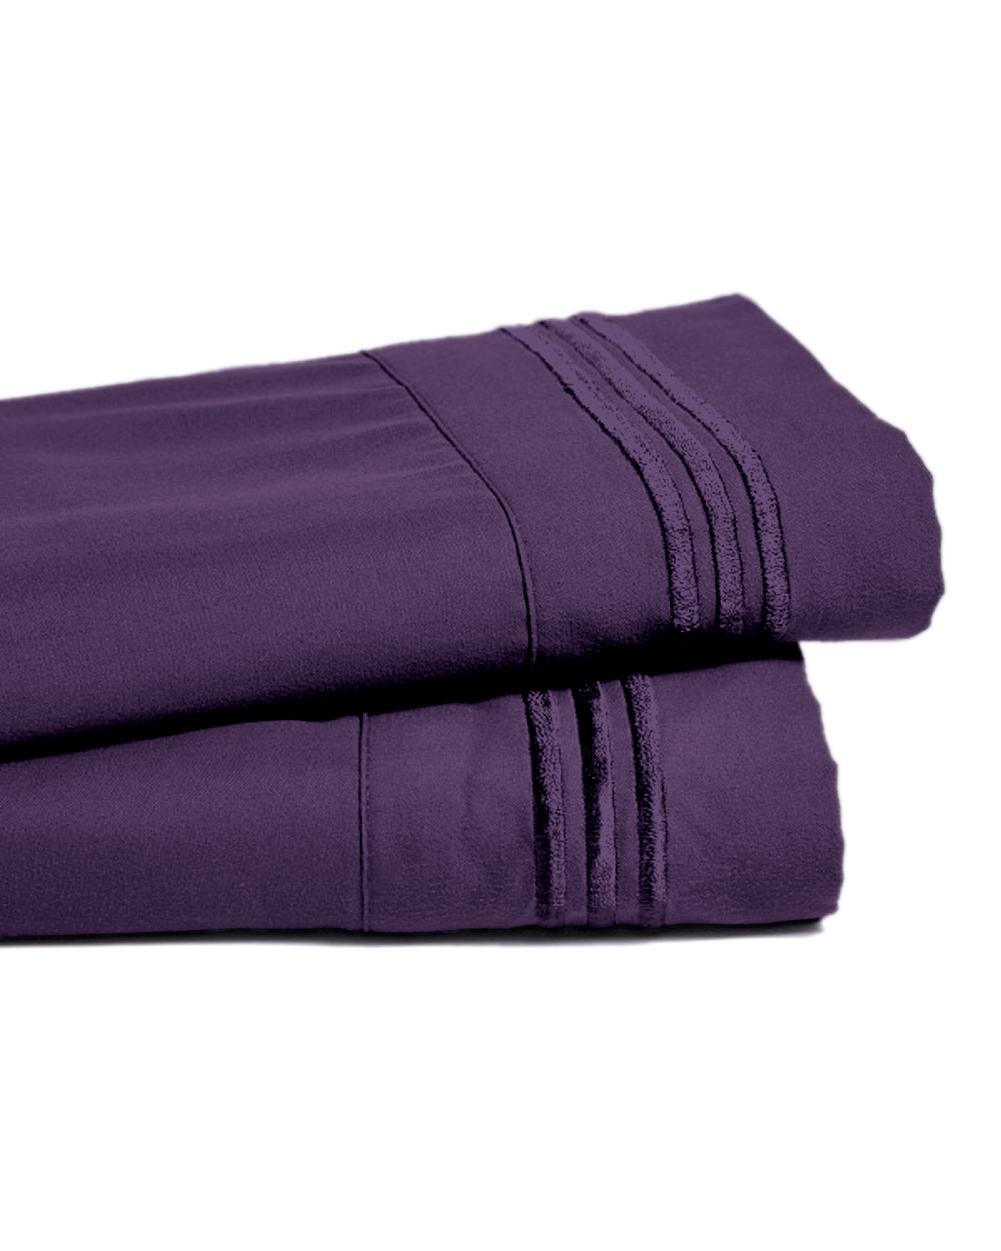 Deep Pocket Bamboo Bed Sheet - Luxury 2200 Embroidered Wrinkle, Fade and Stain Resistant Sheets - Purple Full Size